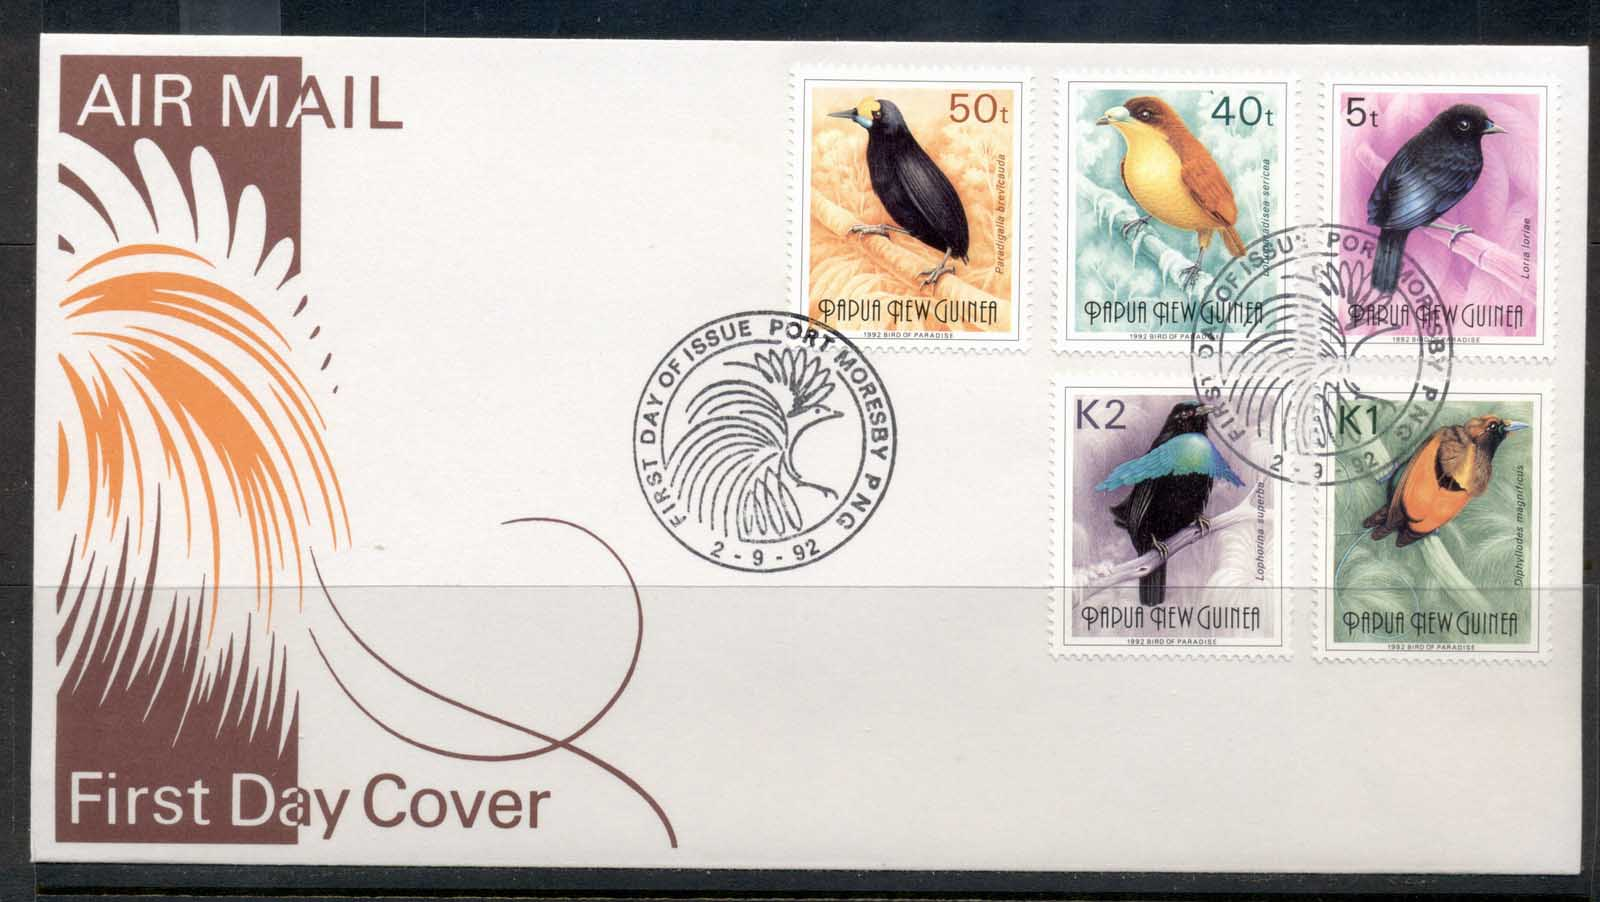 PNG 1992 Birds of Paradise III(5) (5t,40t,50t,K1,K2) FDC